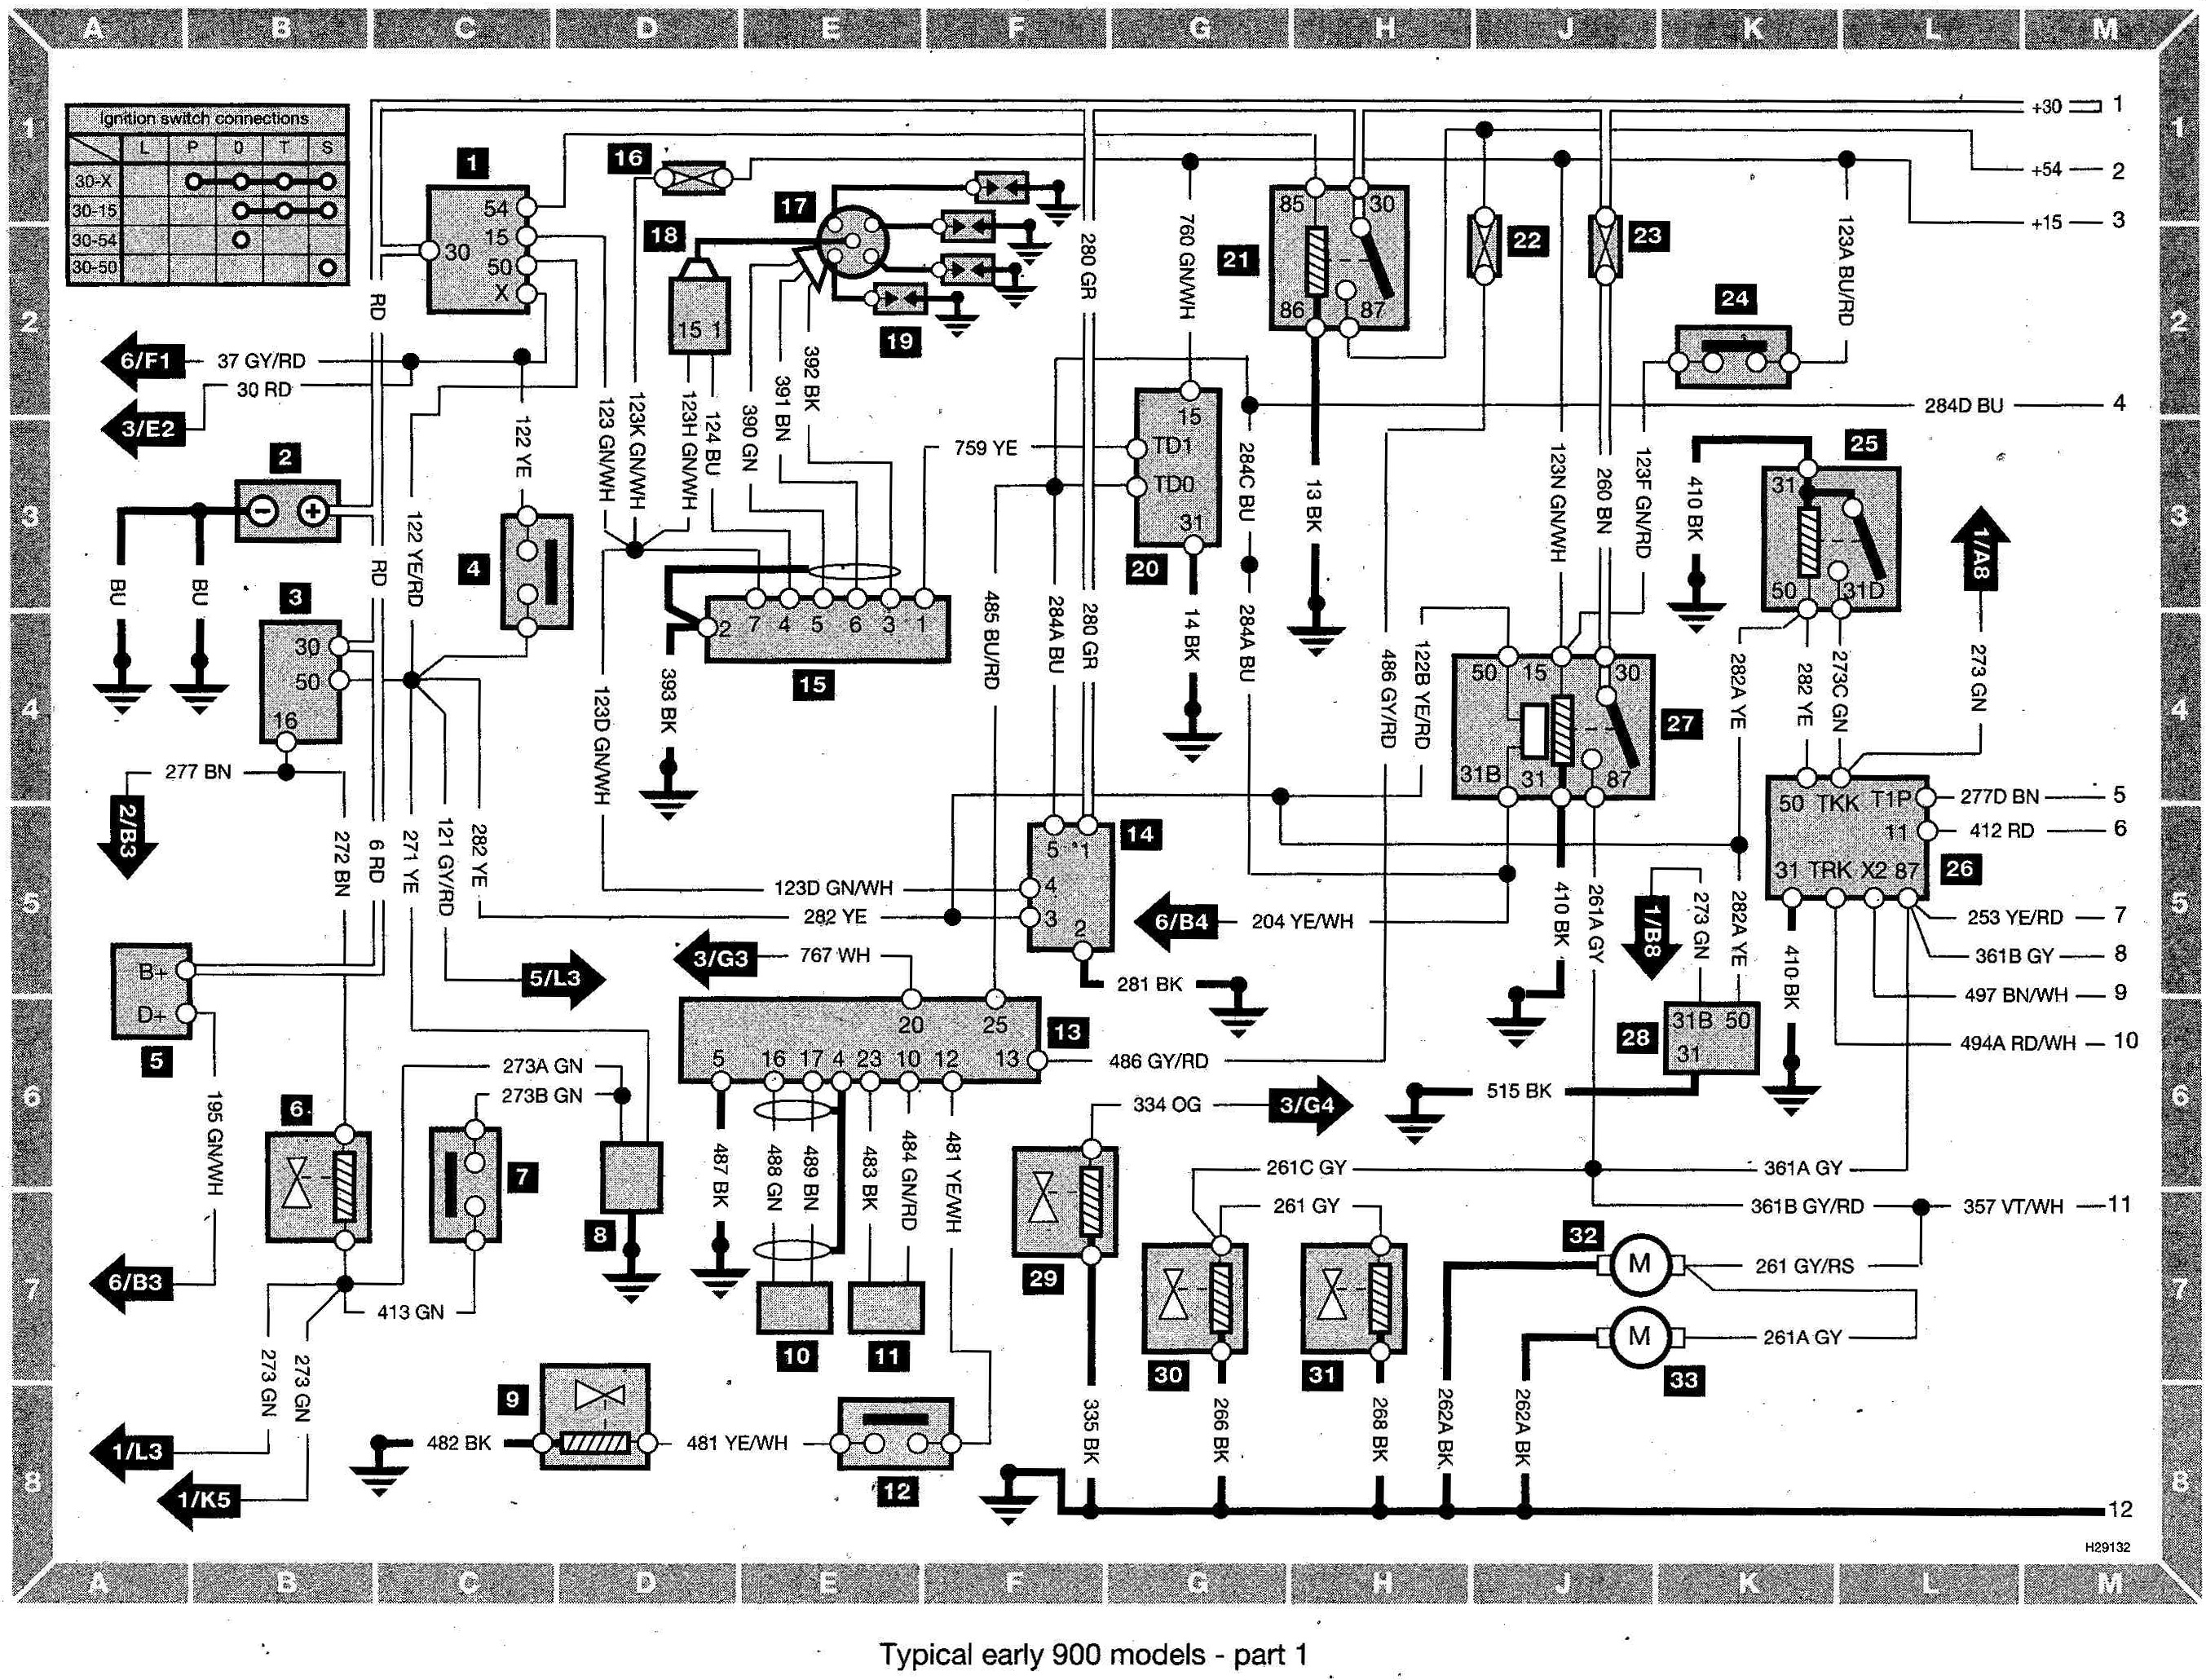 Saab Navigation Wiring Diagram Library 2006 Mini Cooper Radiator Fan Diagrams Data Schema Rh Site De Joueurs Com 2004 9 3